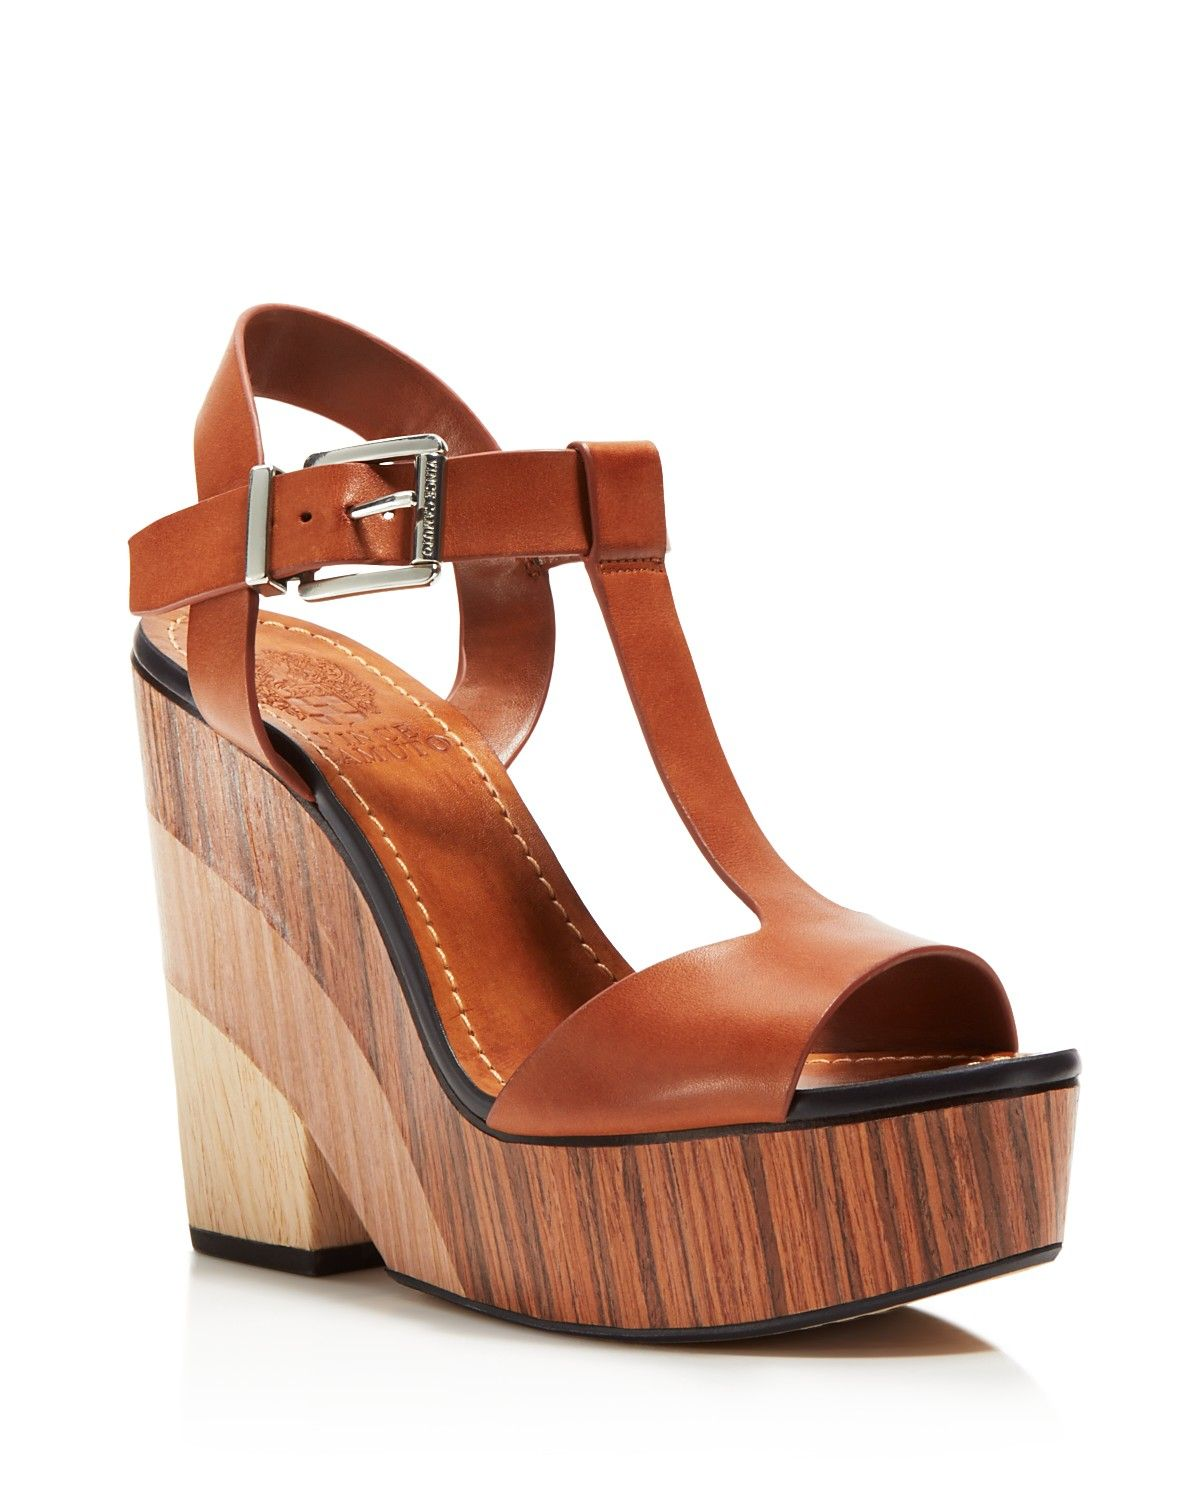 b160292bf9 VINCE CAMUTO channels retro '70s style in our exclusive leg-lengthening  Oriana T-strap sandal, set on a gravity-defying wood-effect heel.